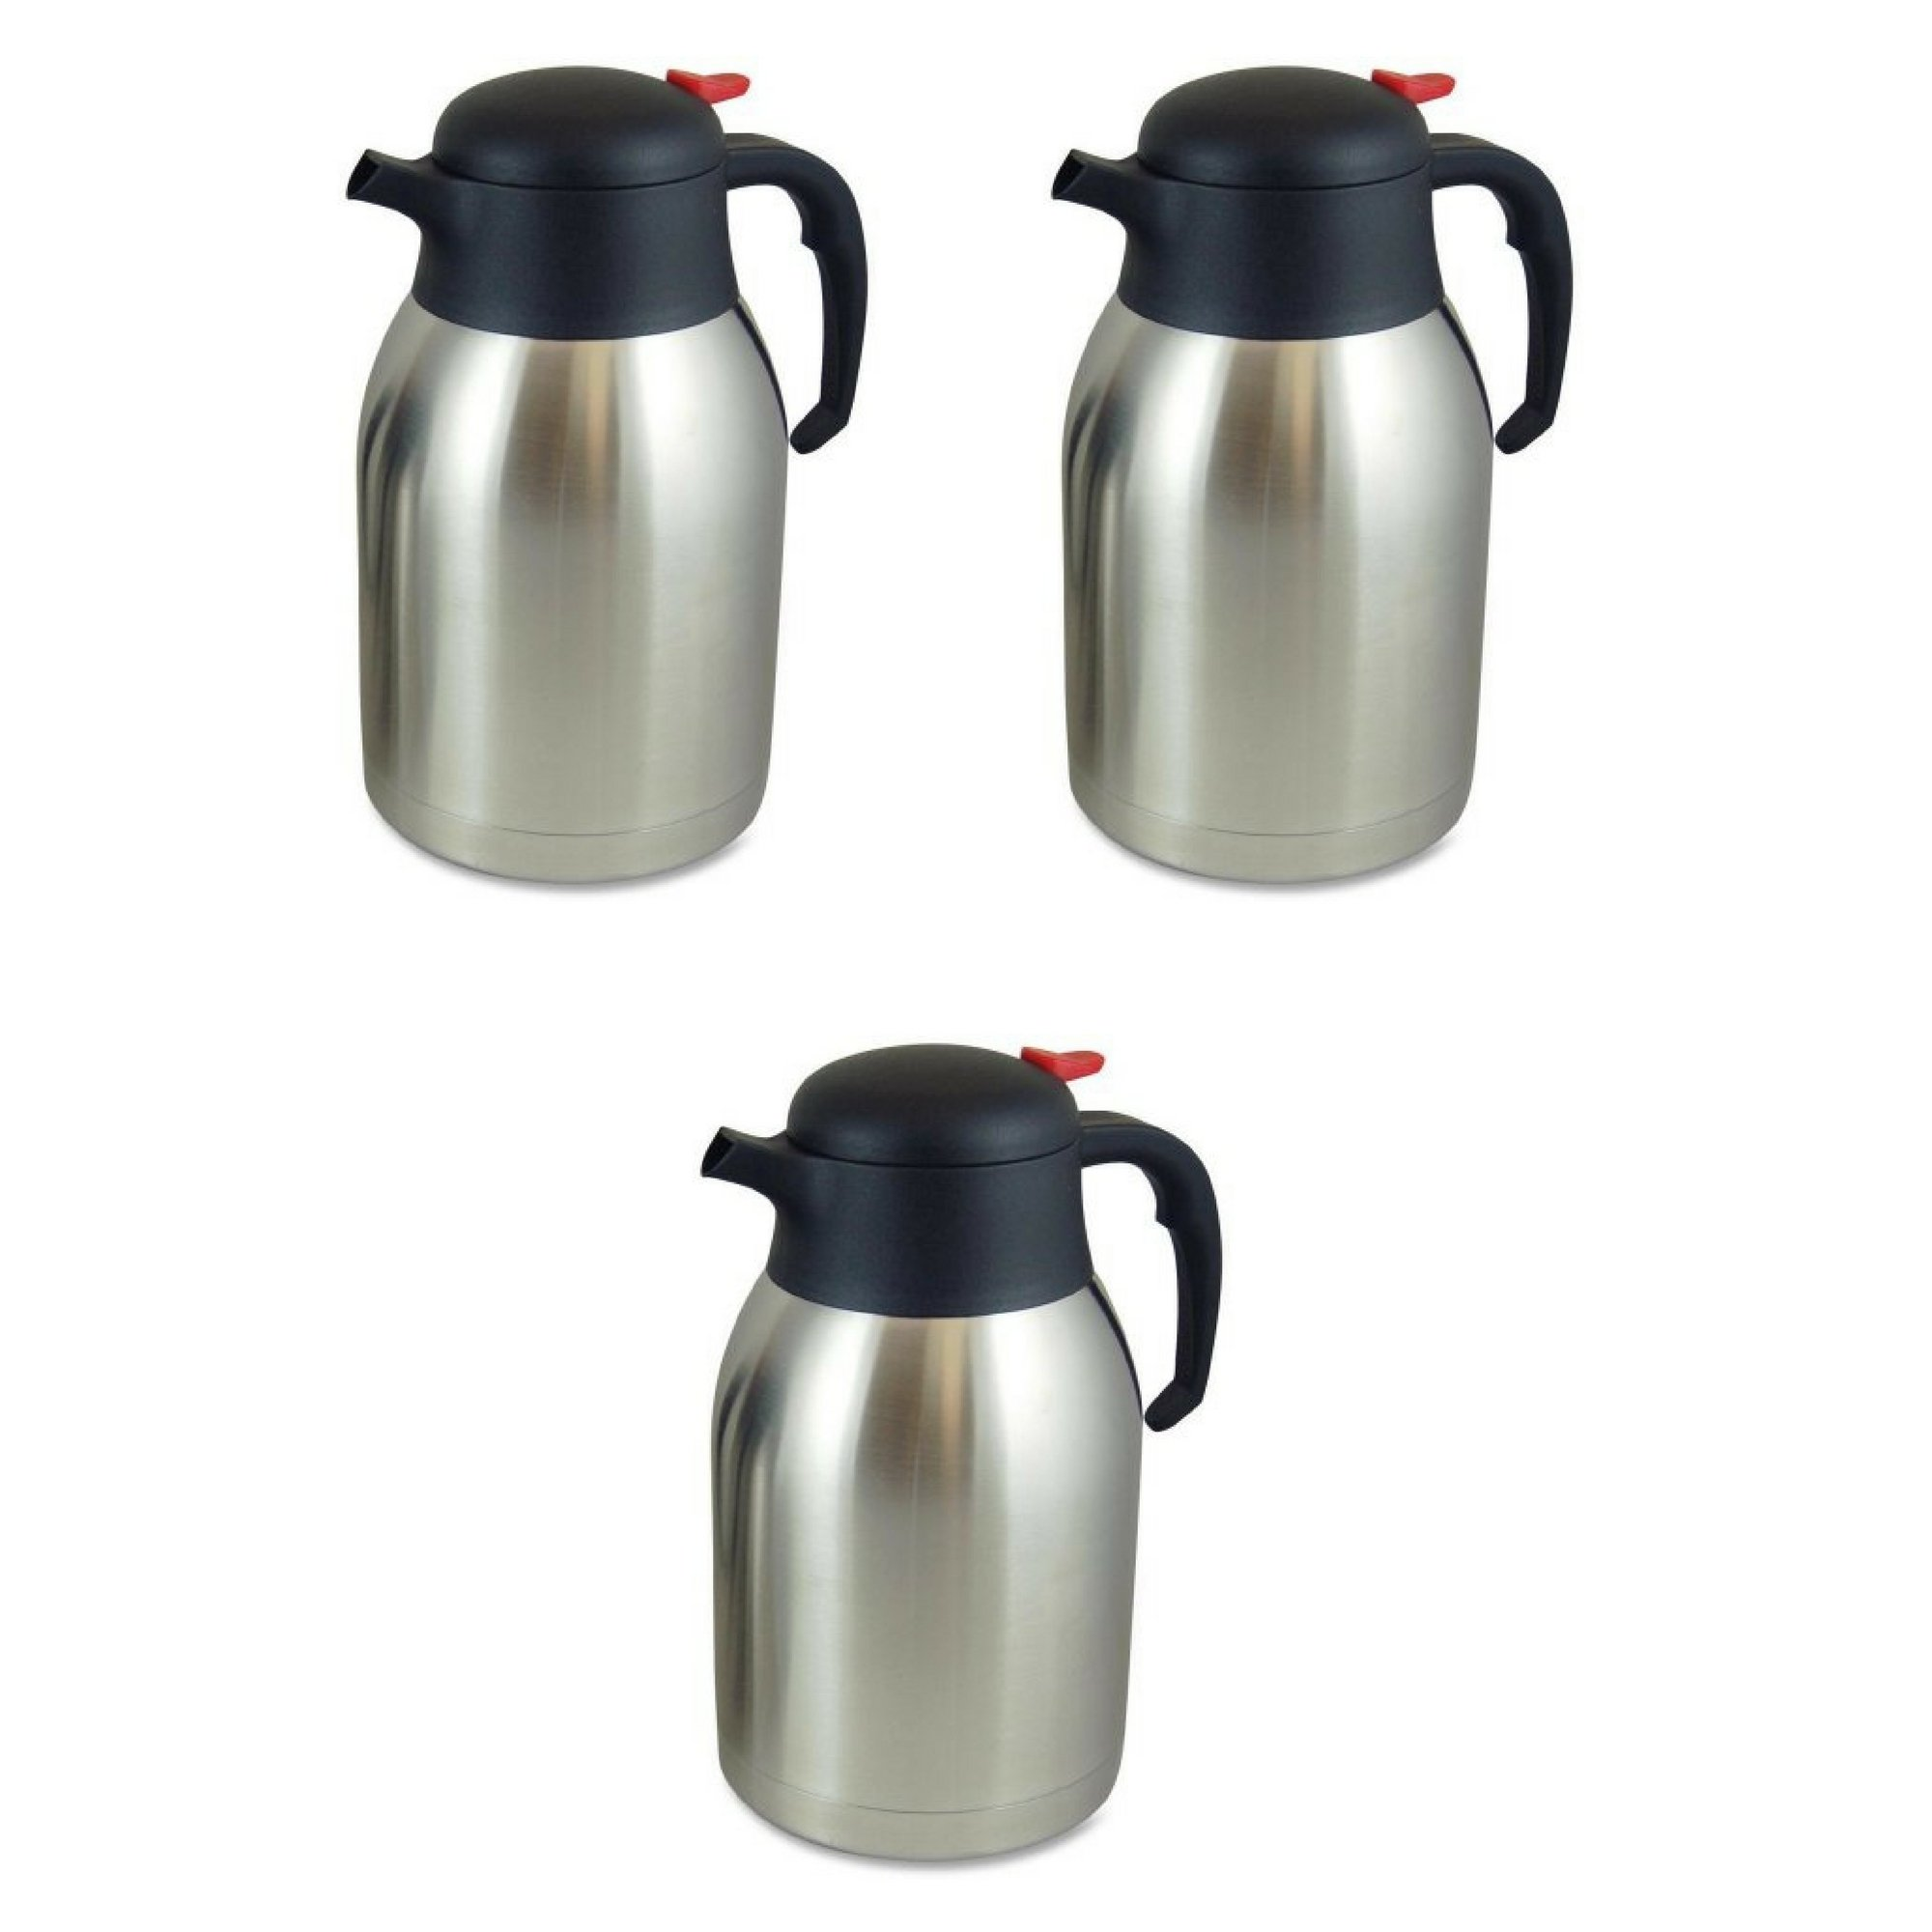 Genuine Joe GJO11956 Stainless Steel Everyday Double Wall Vacuum Insulated Carafe, 2L Capacity - 3 Packs